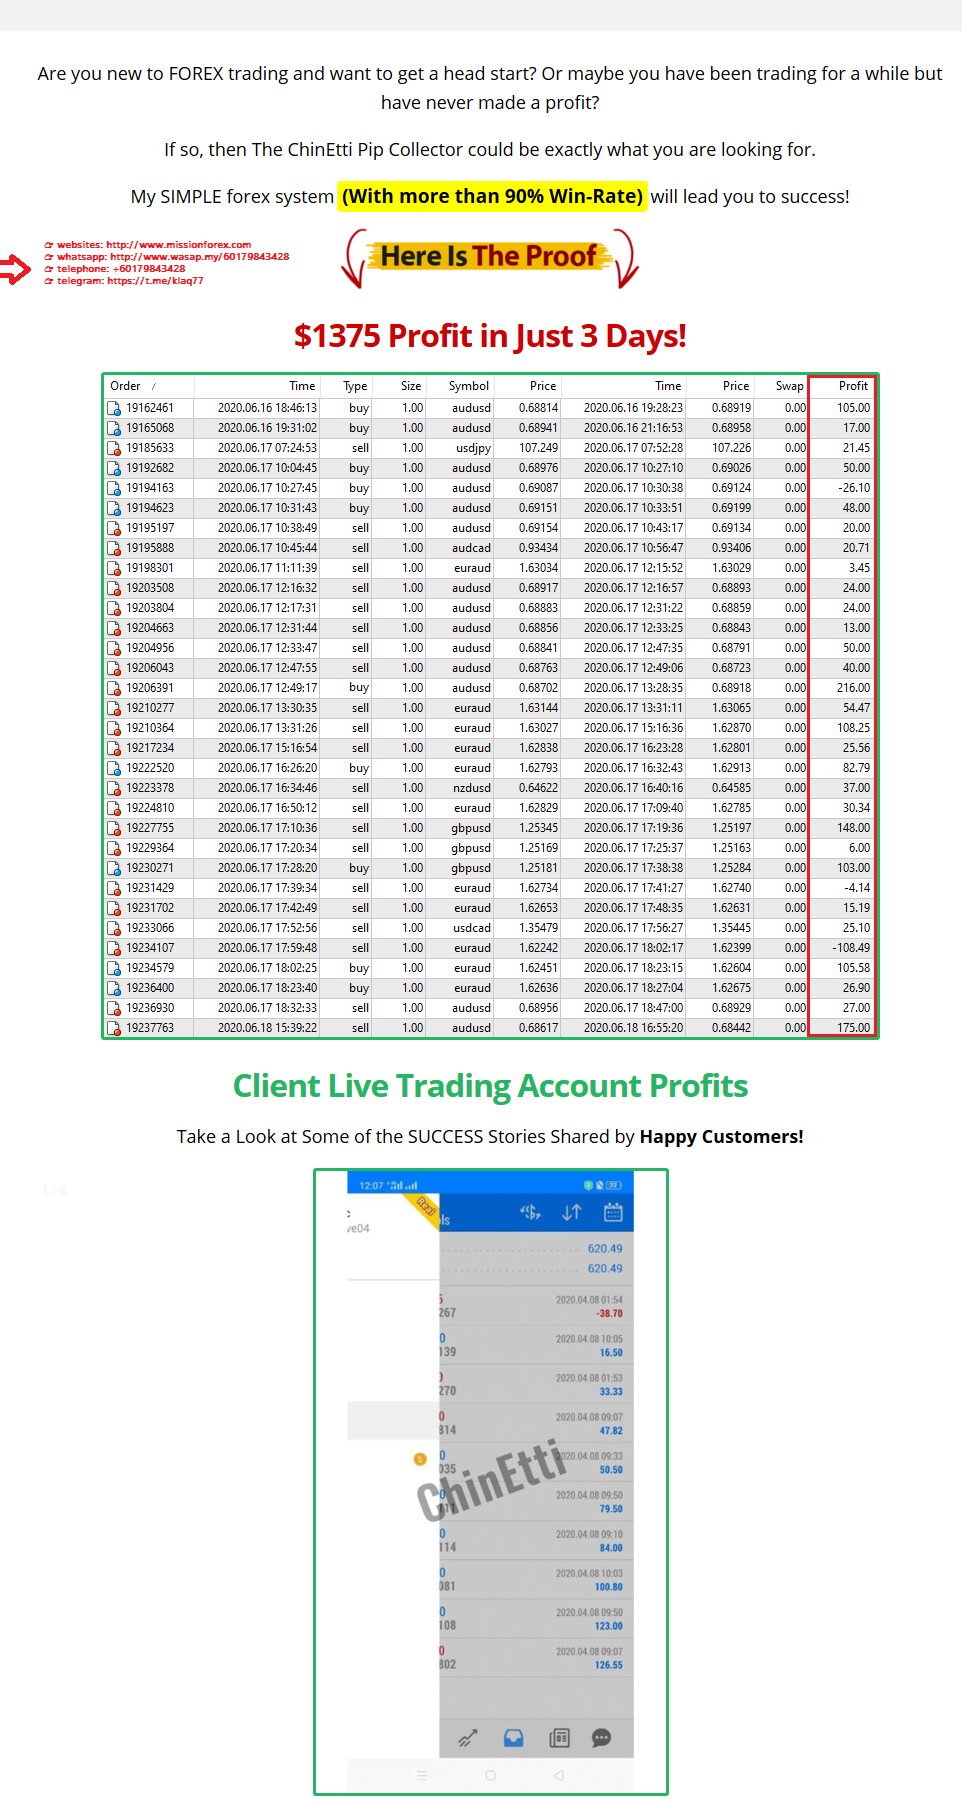 ChinEtti Pip Collector SIMPLE Forex system (With more than 90% Win-Rate)